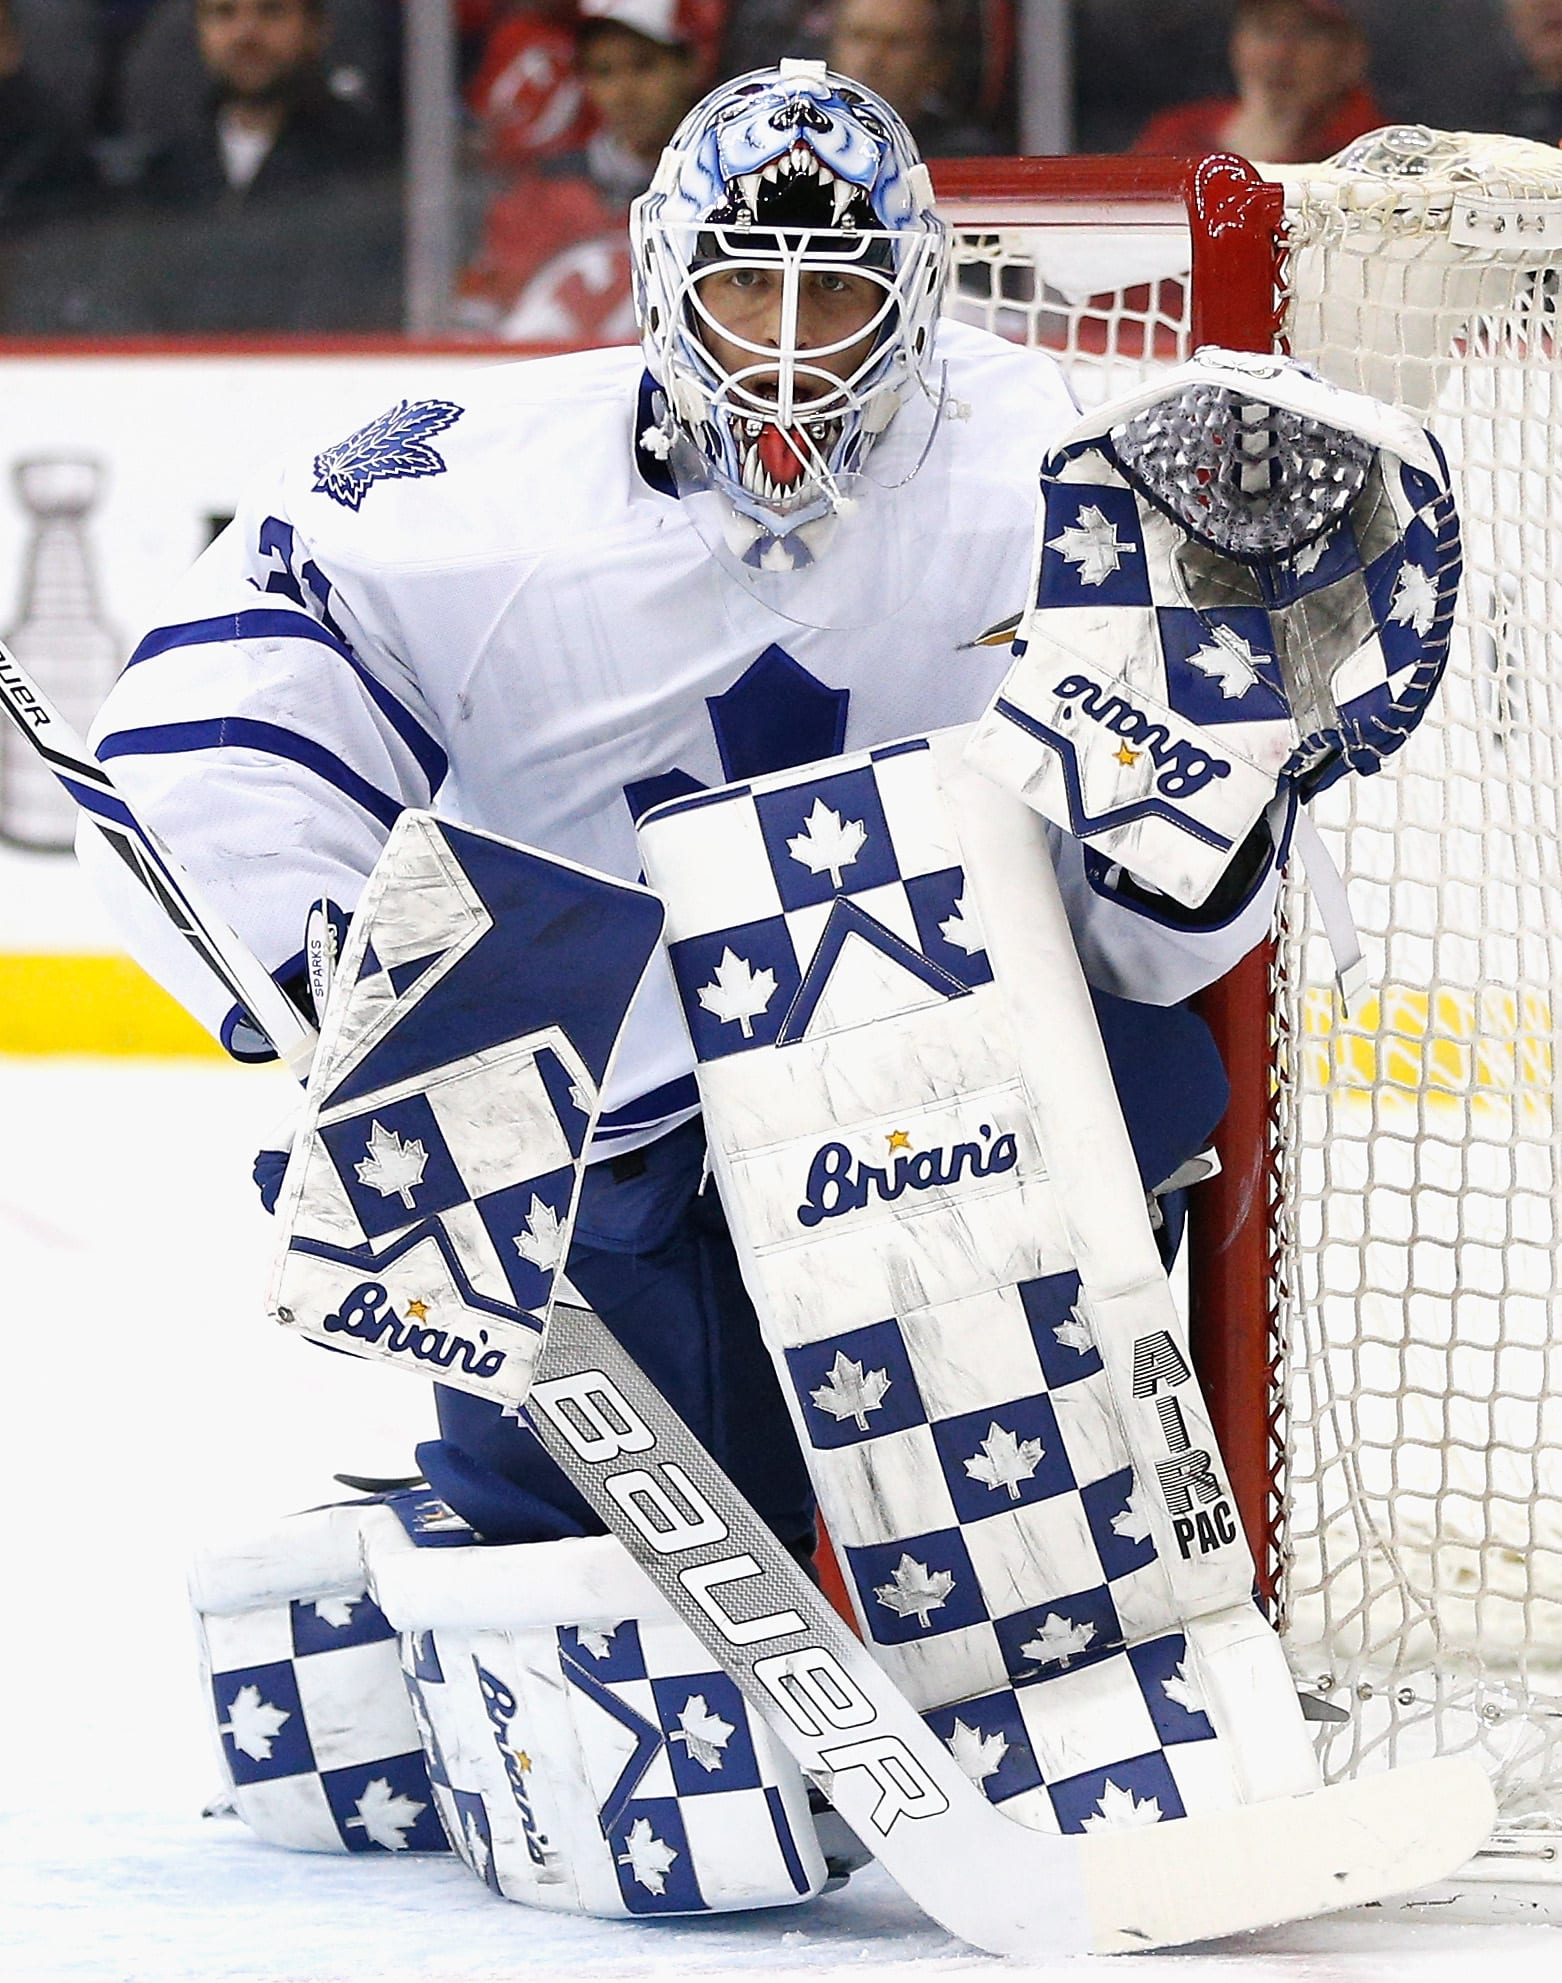 Top 5 Best Looking Toronto Maple Leafs Goalie Masks Of All Time